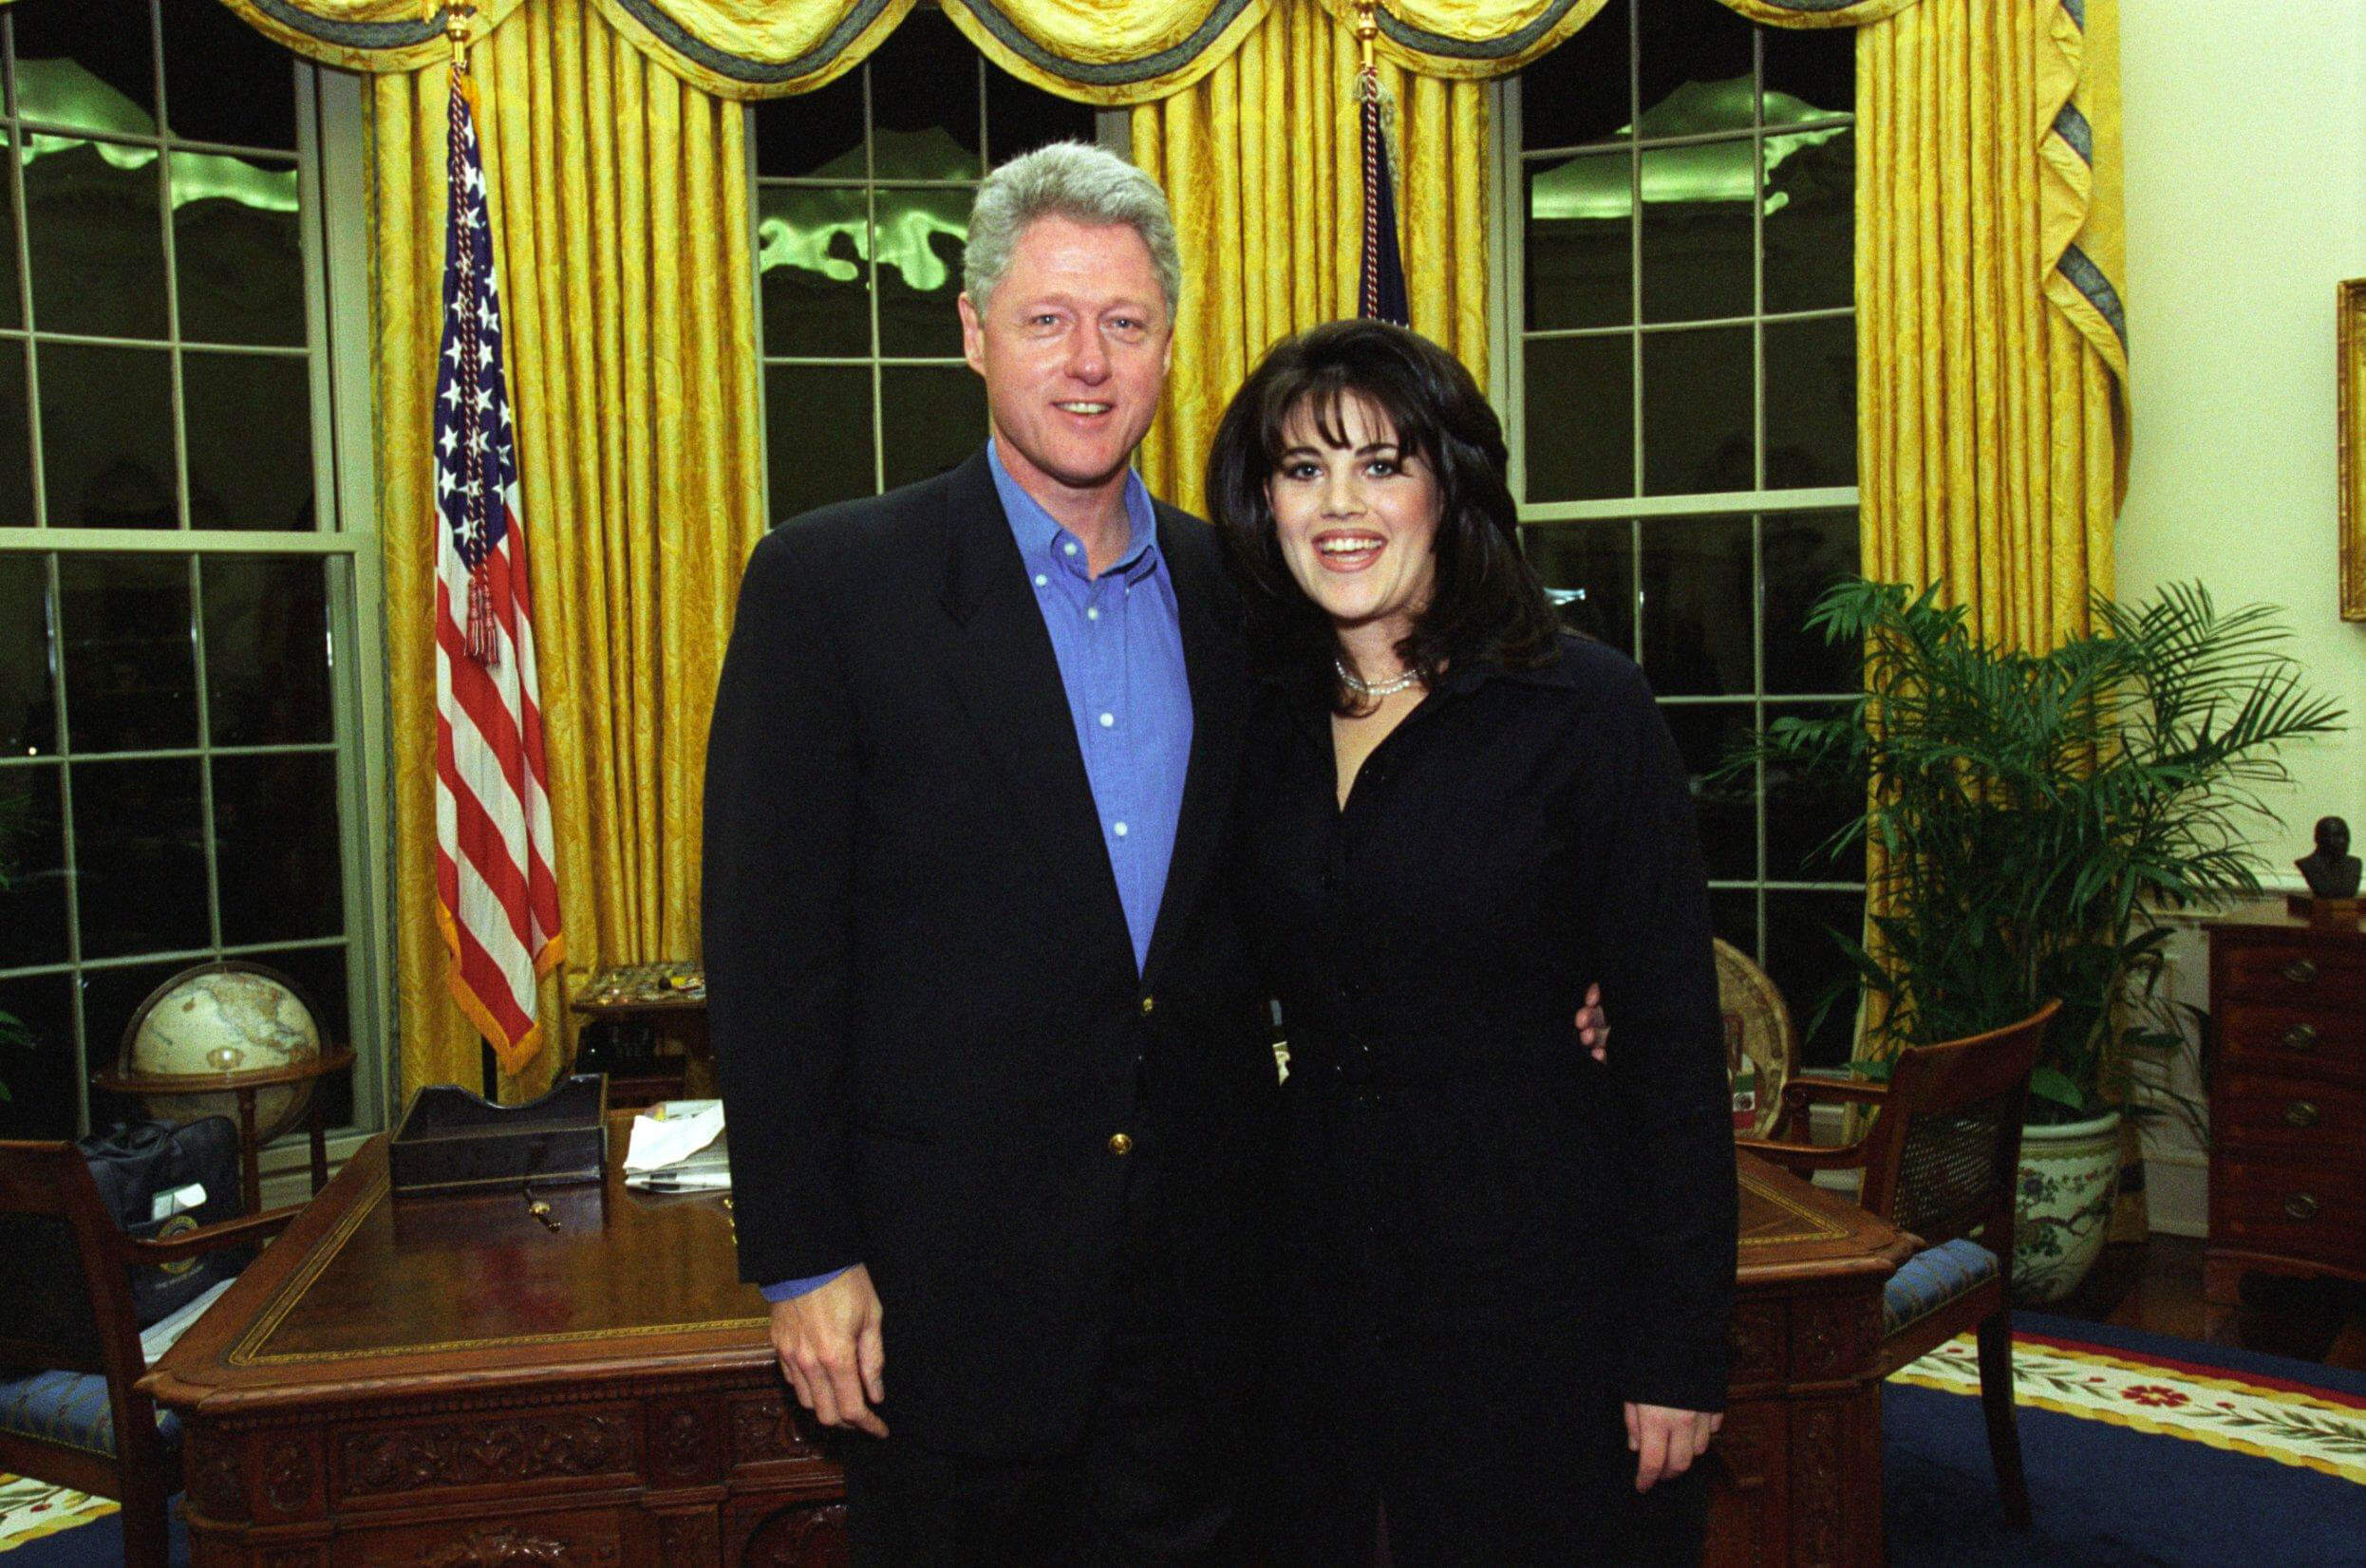 Bill Clinton and Monicaf